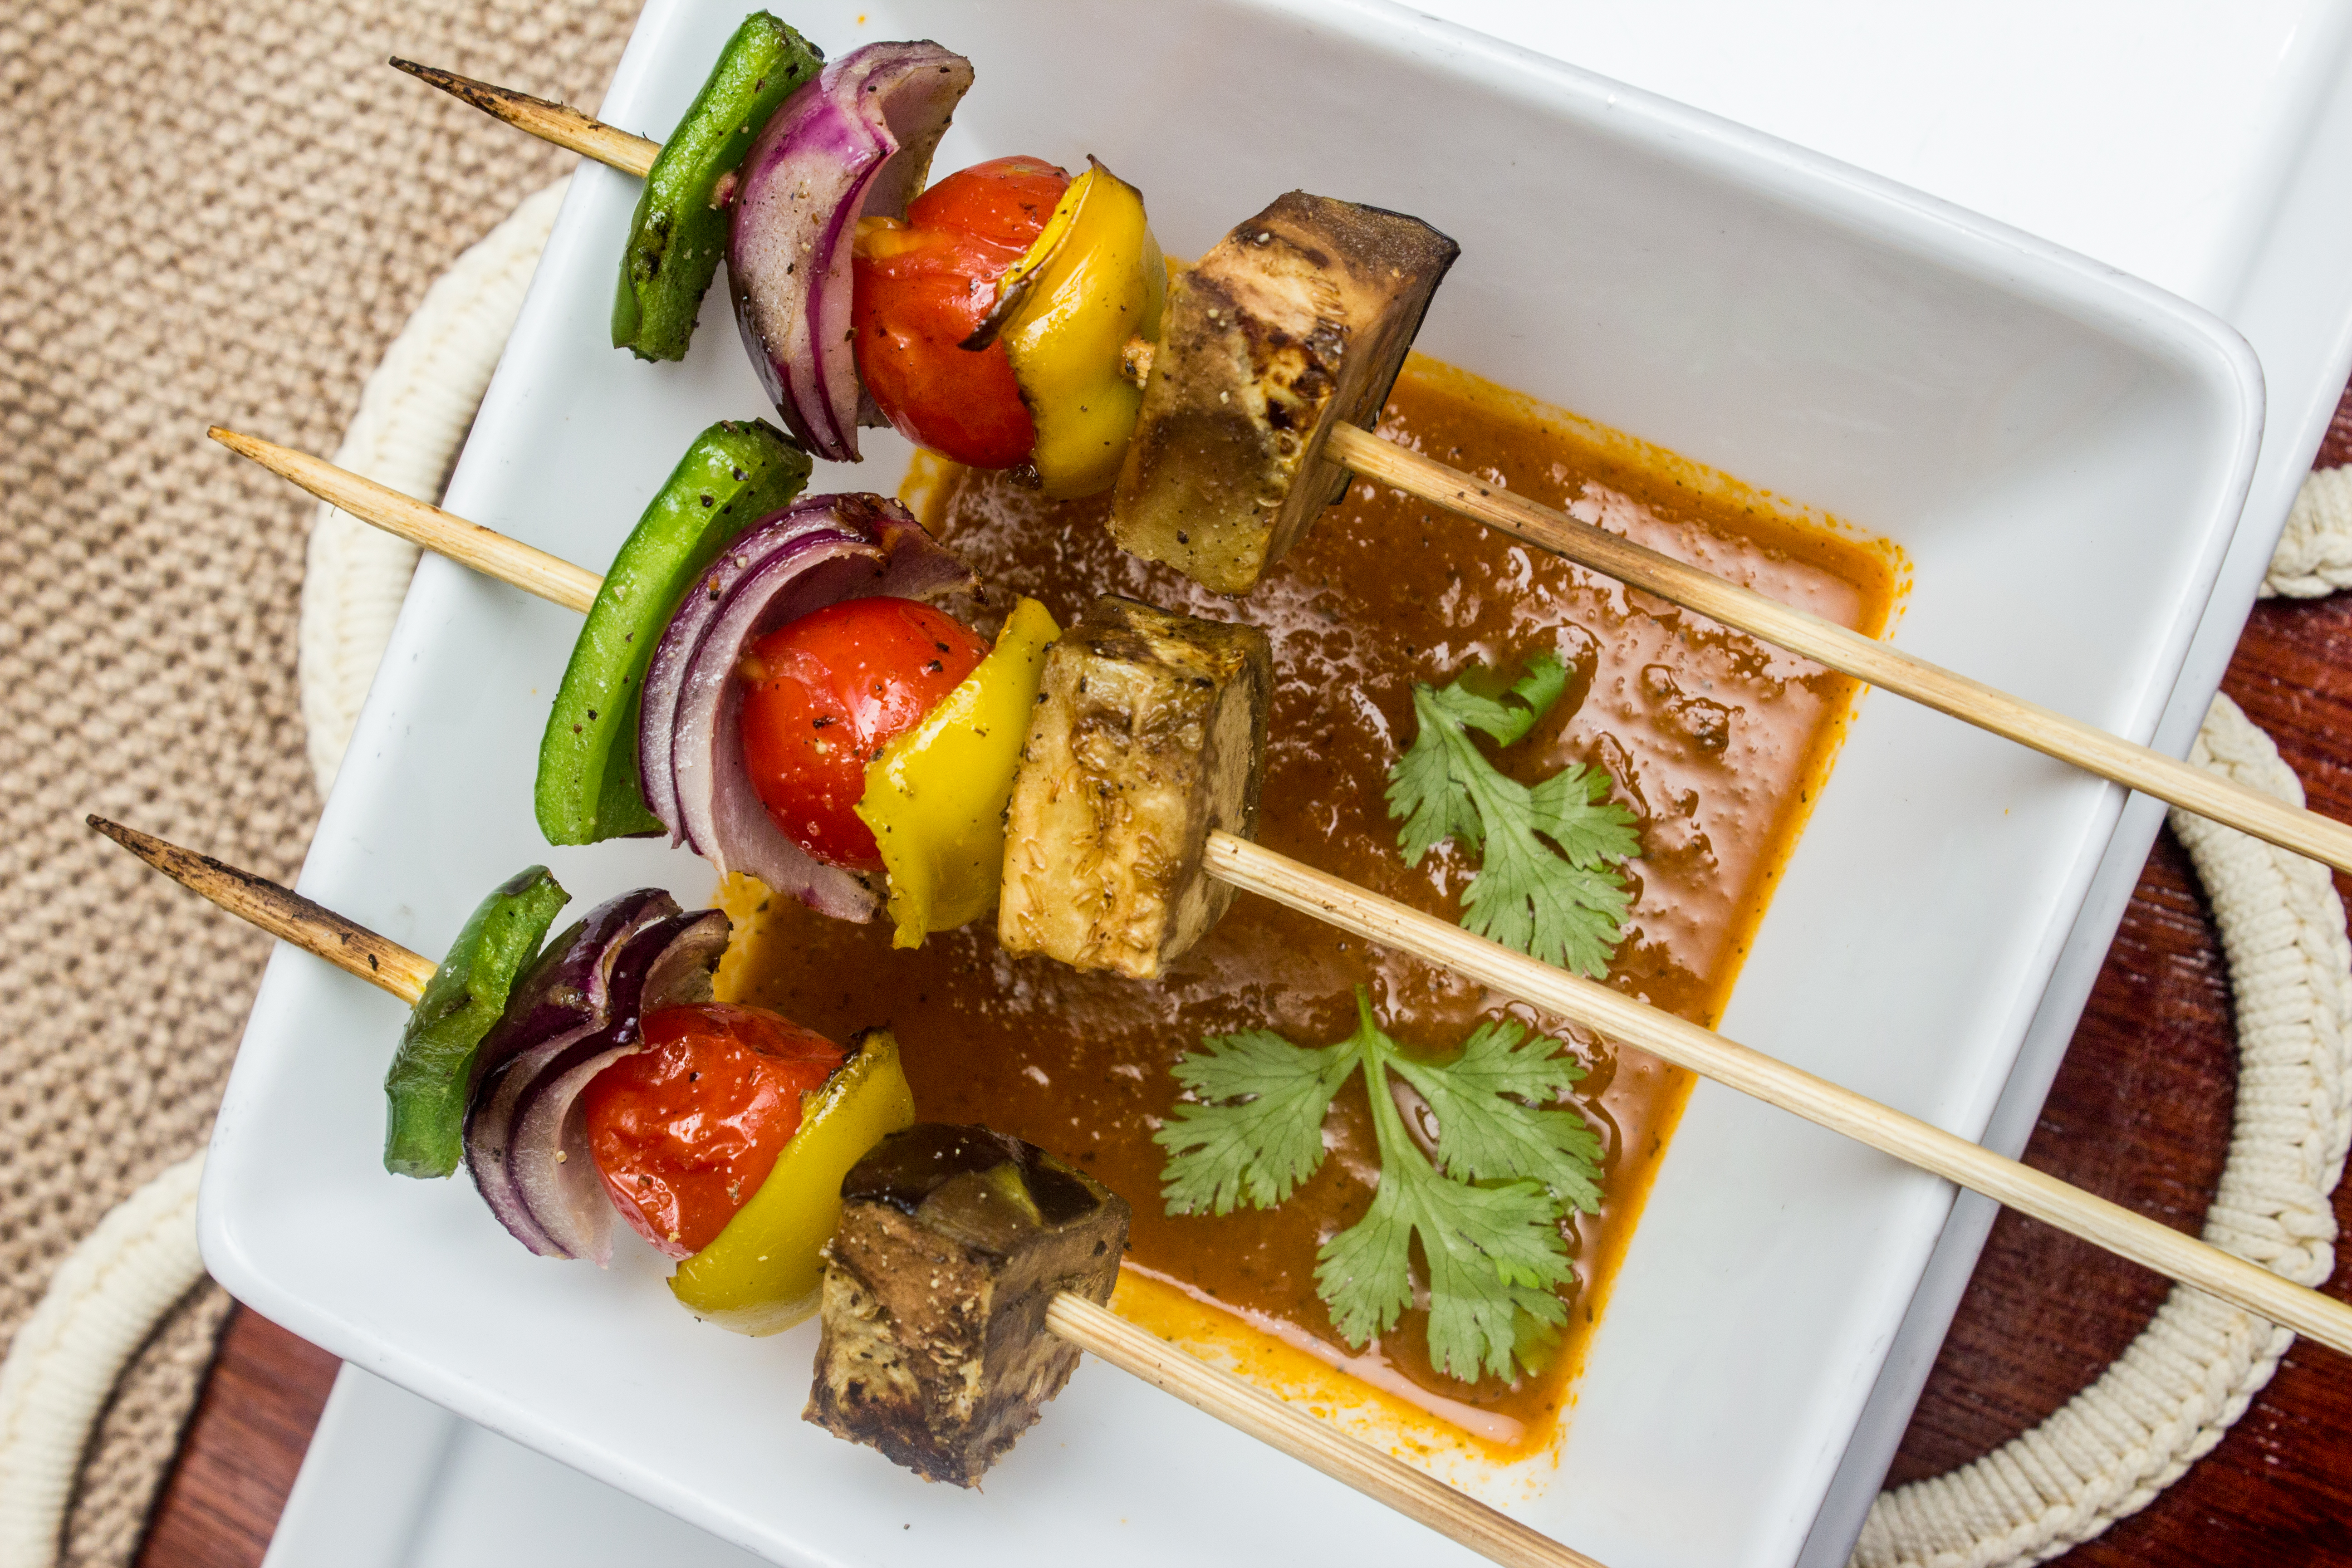 Grilled veggies skewer.